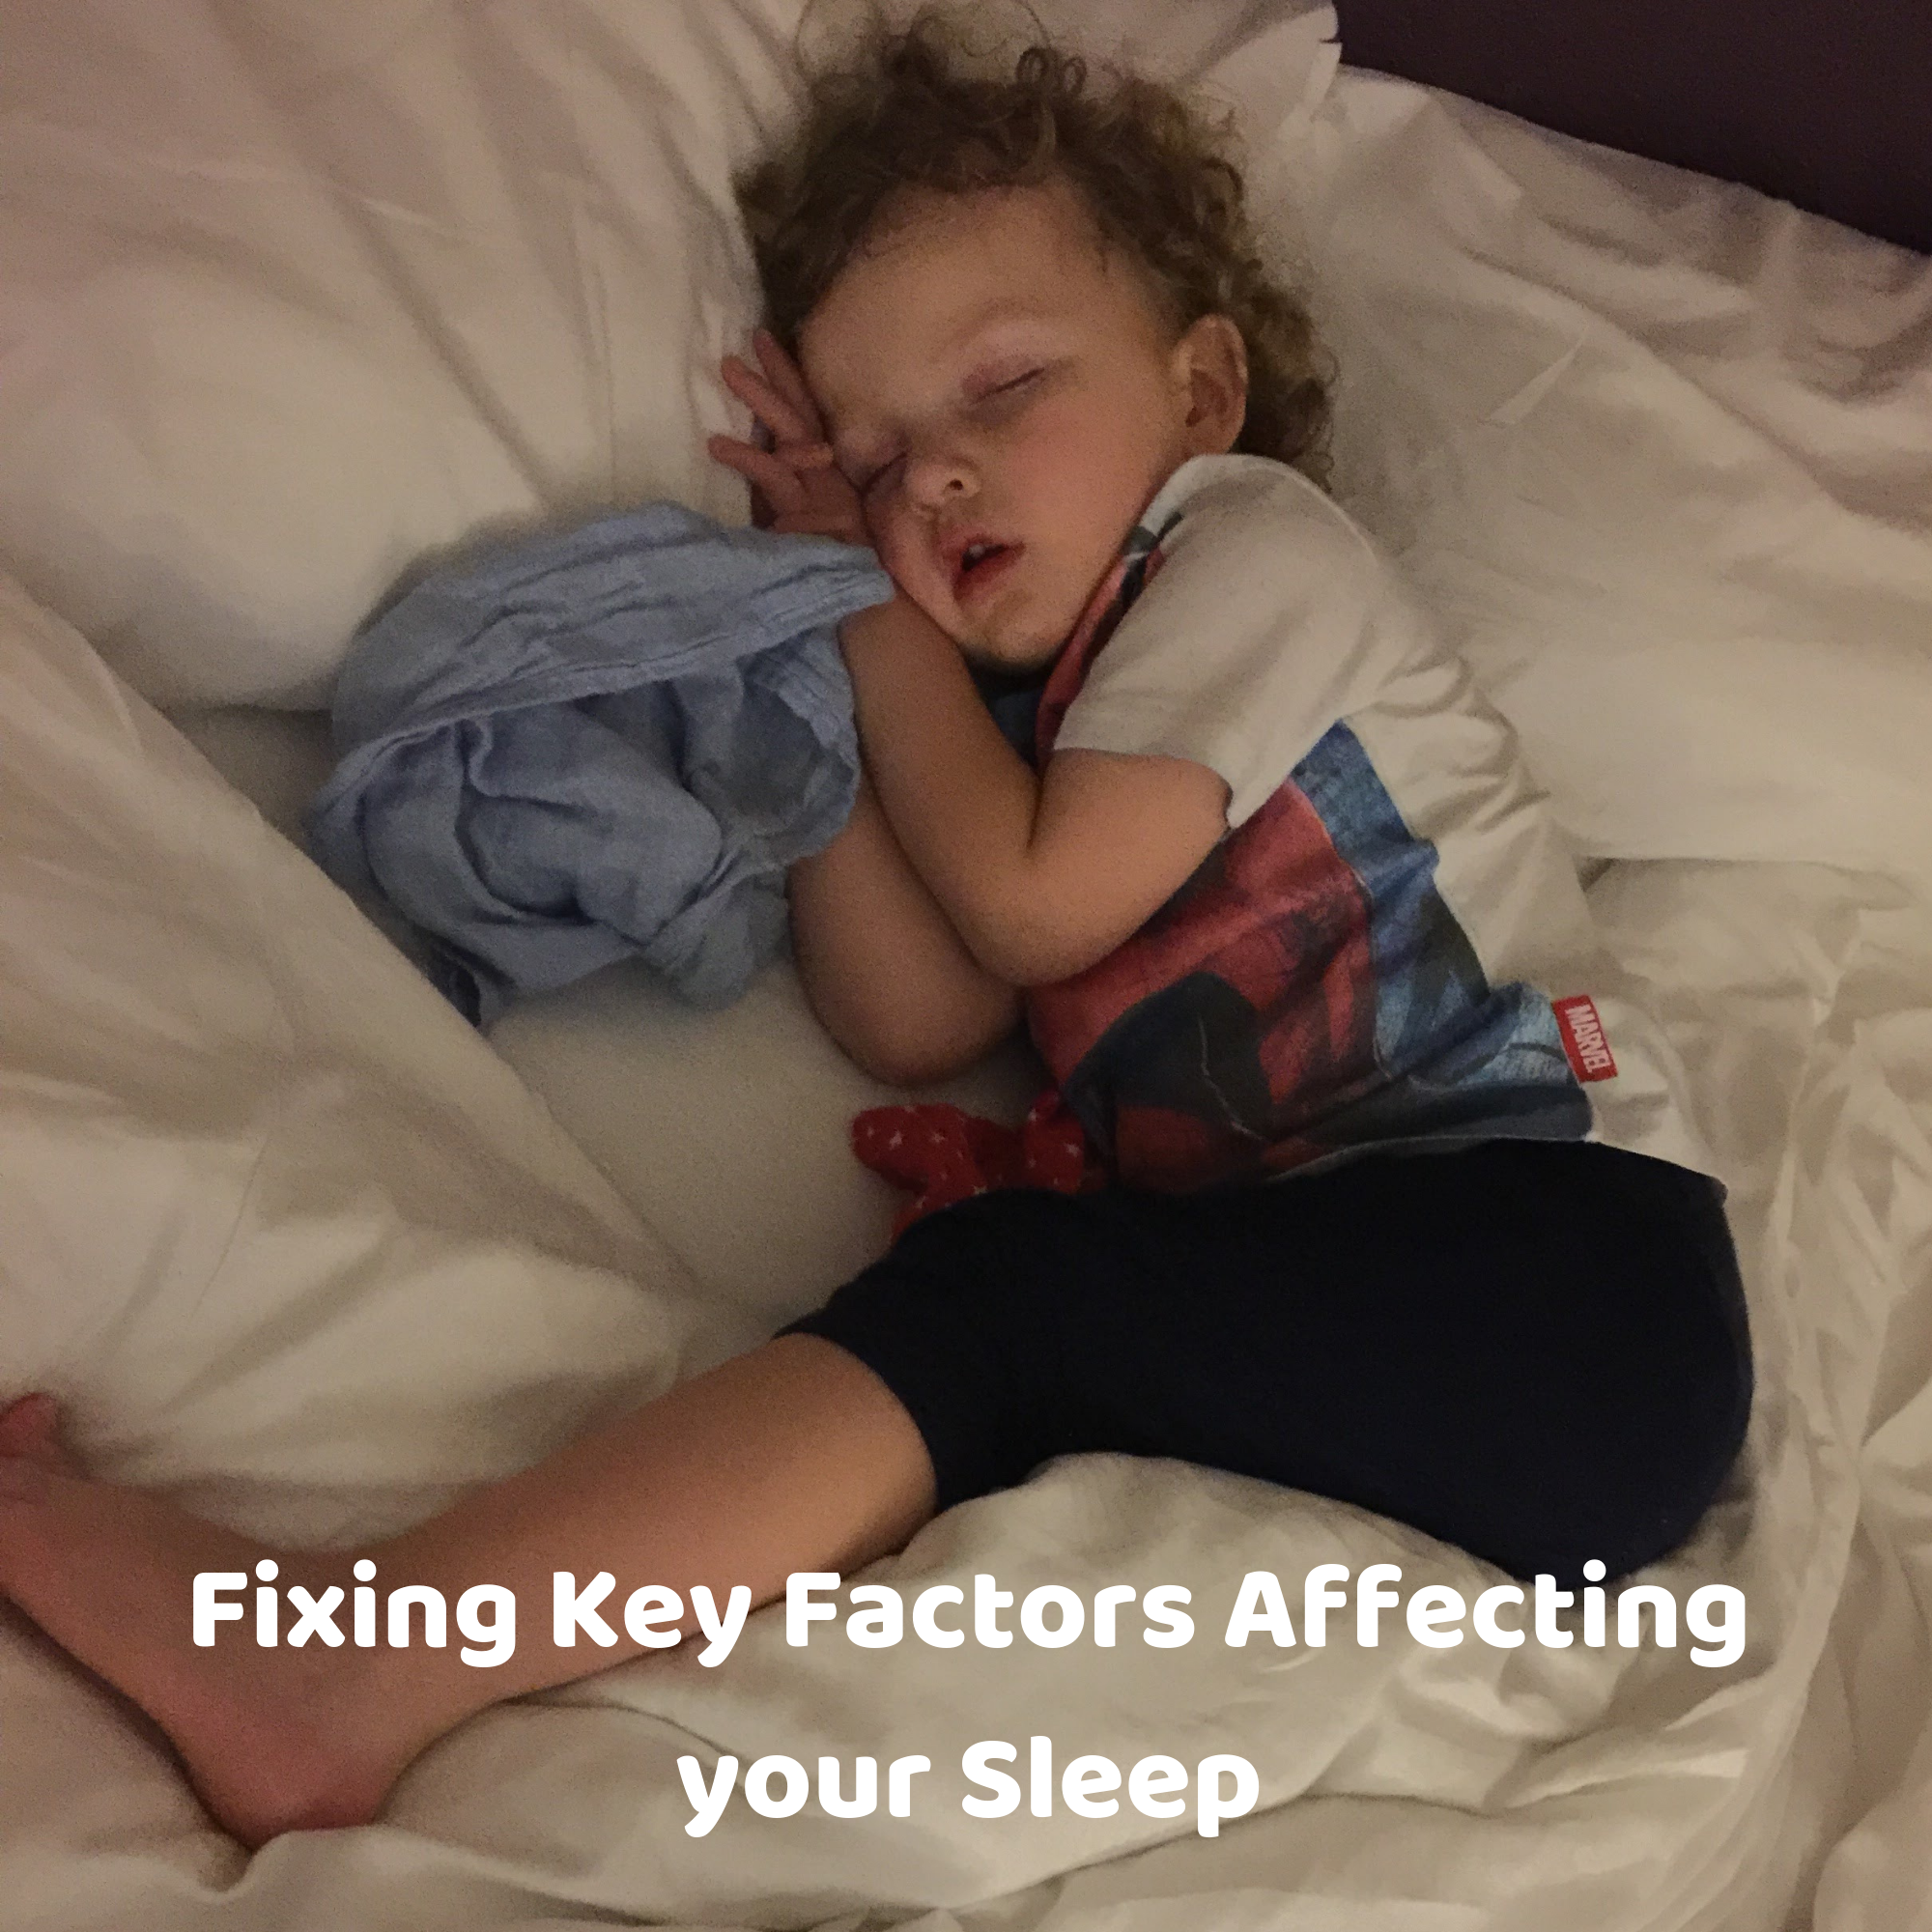 Fixing Key Factors Affecting your Sleep